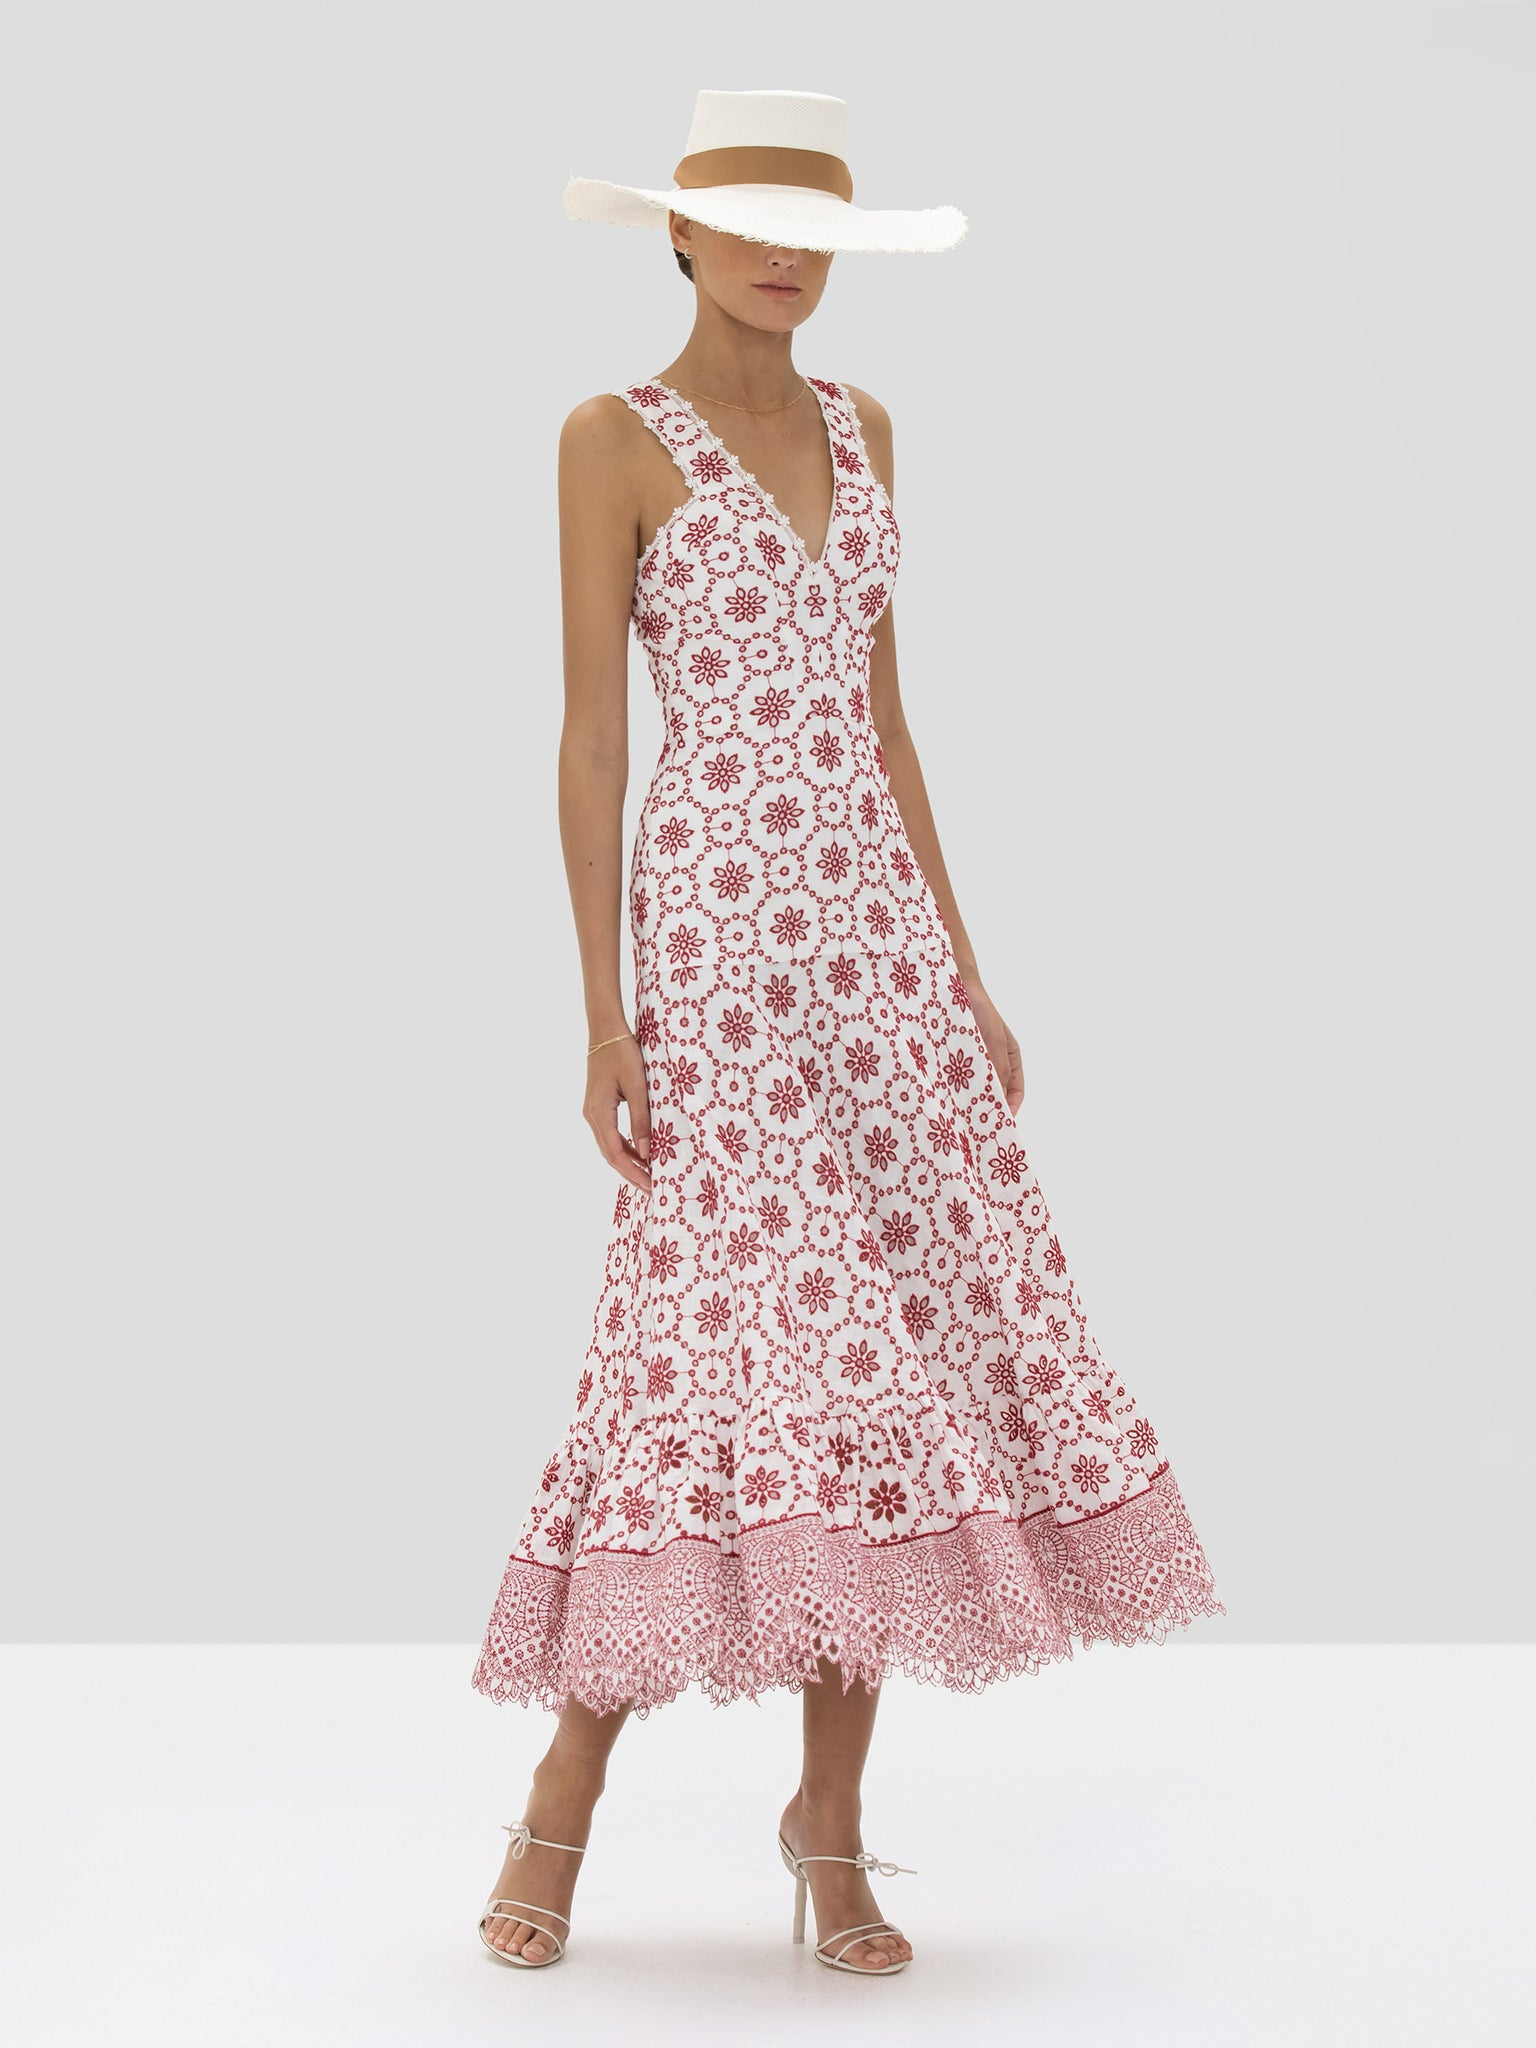 Alexis Eugenia Dress in Berry Eyelet Embroidery from Spring Summer 2020